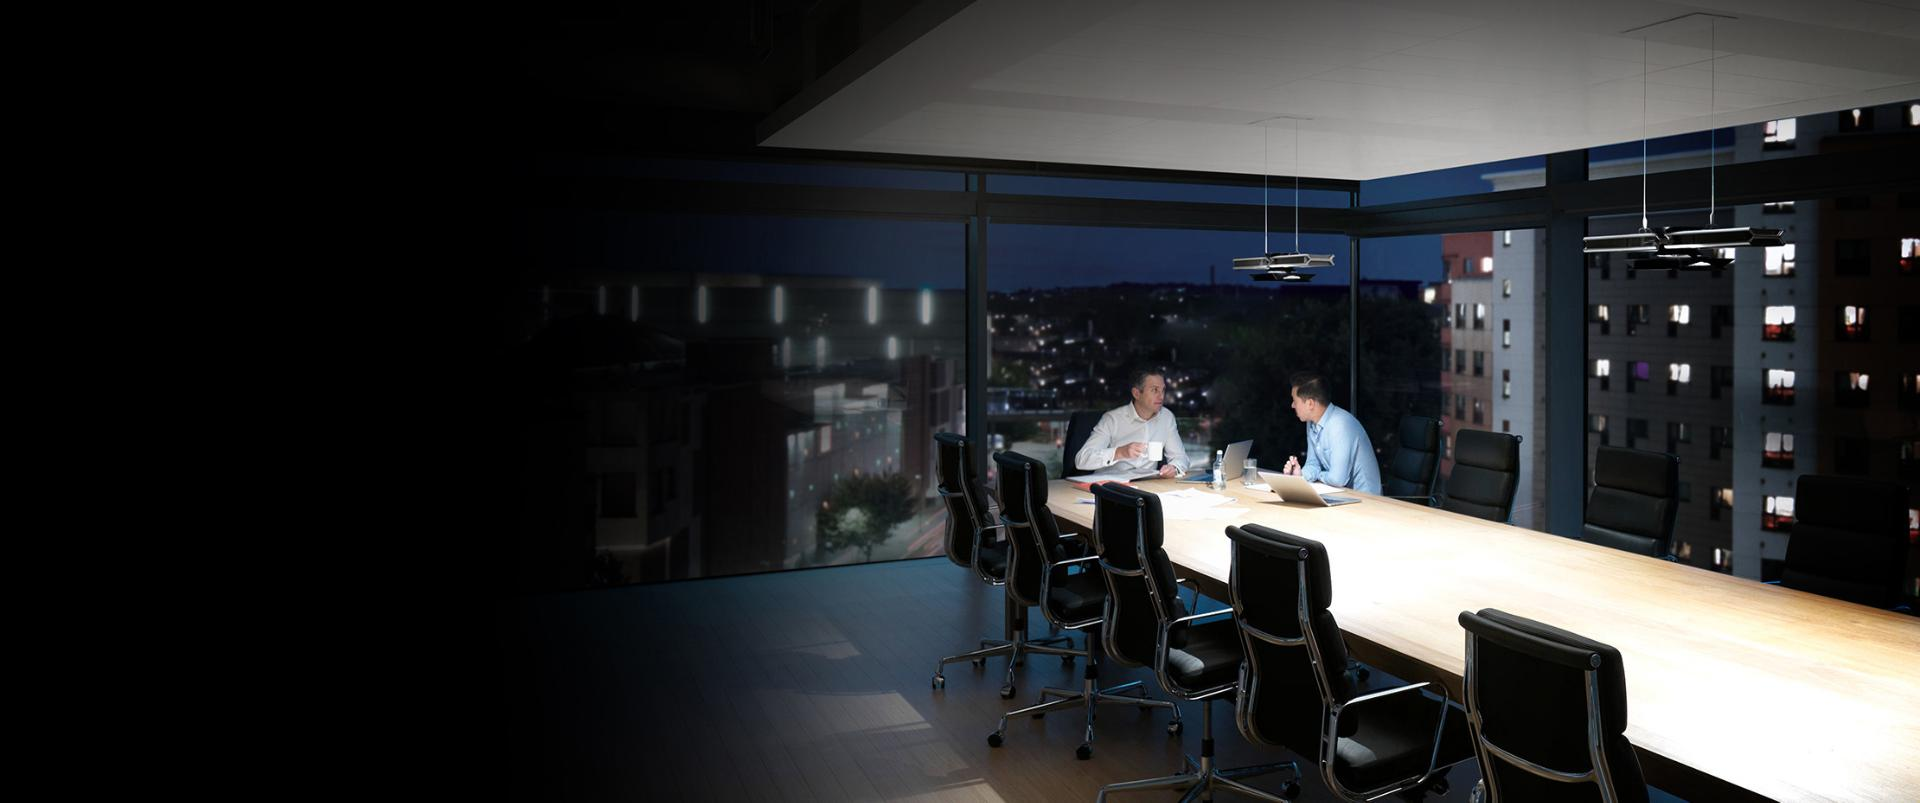 Men working in office under Cu-Beam lighting